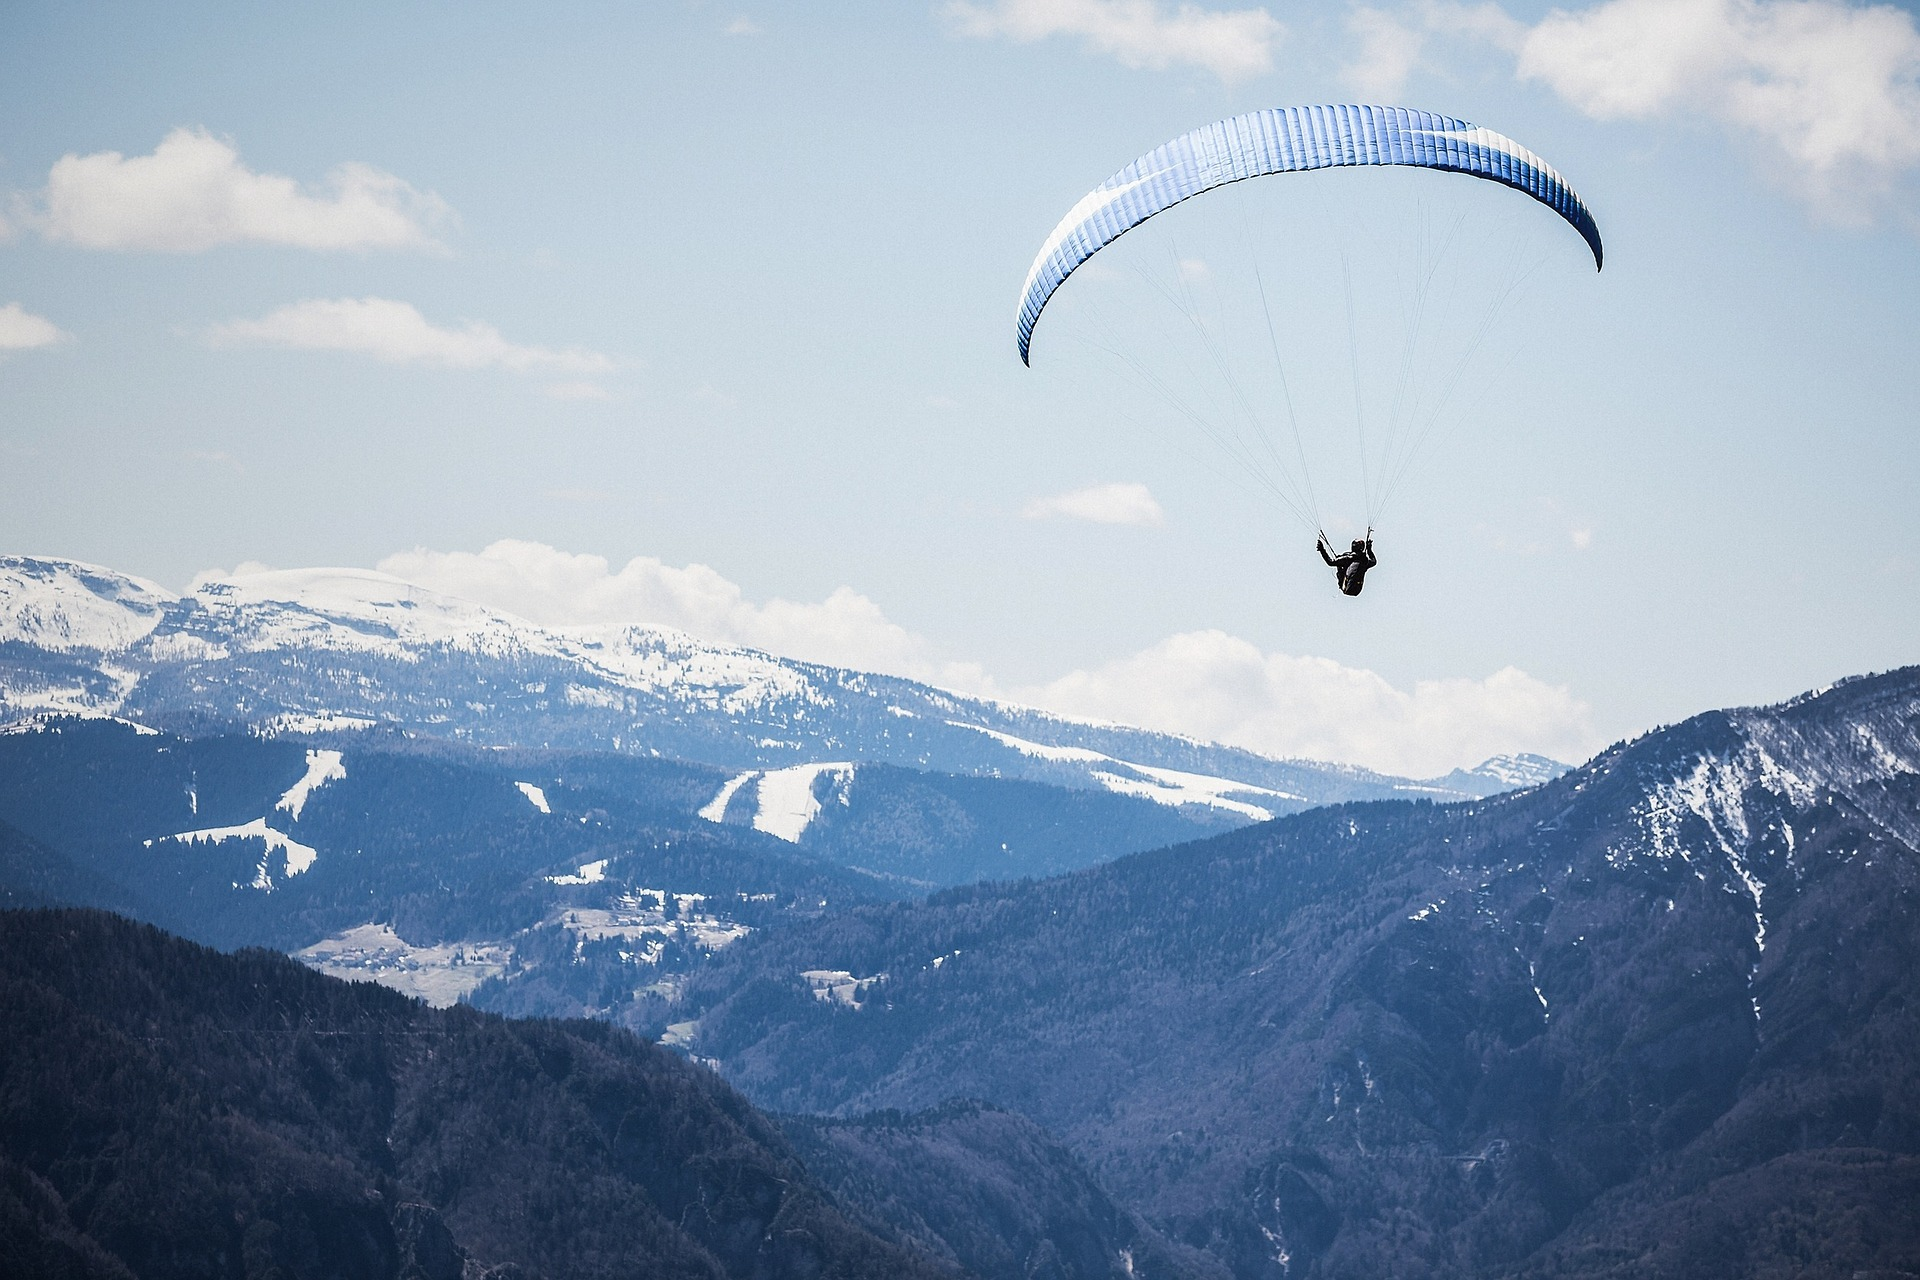 Paragliding Touching Cloud Base